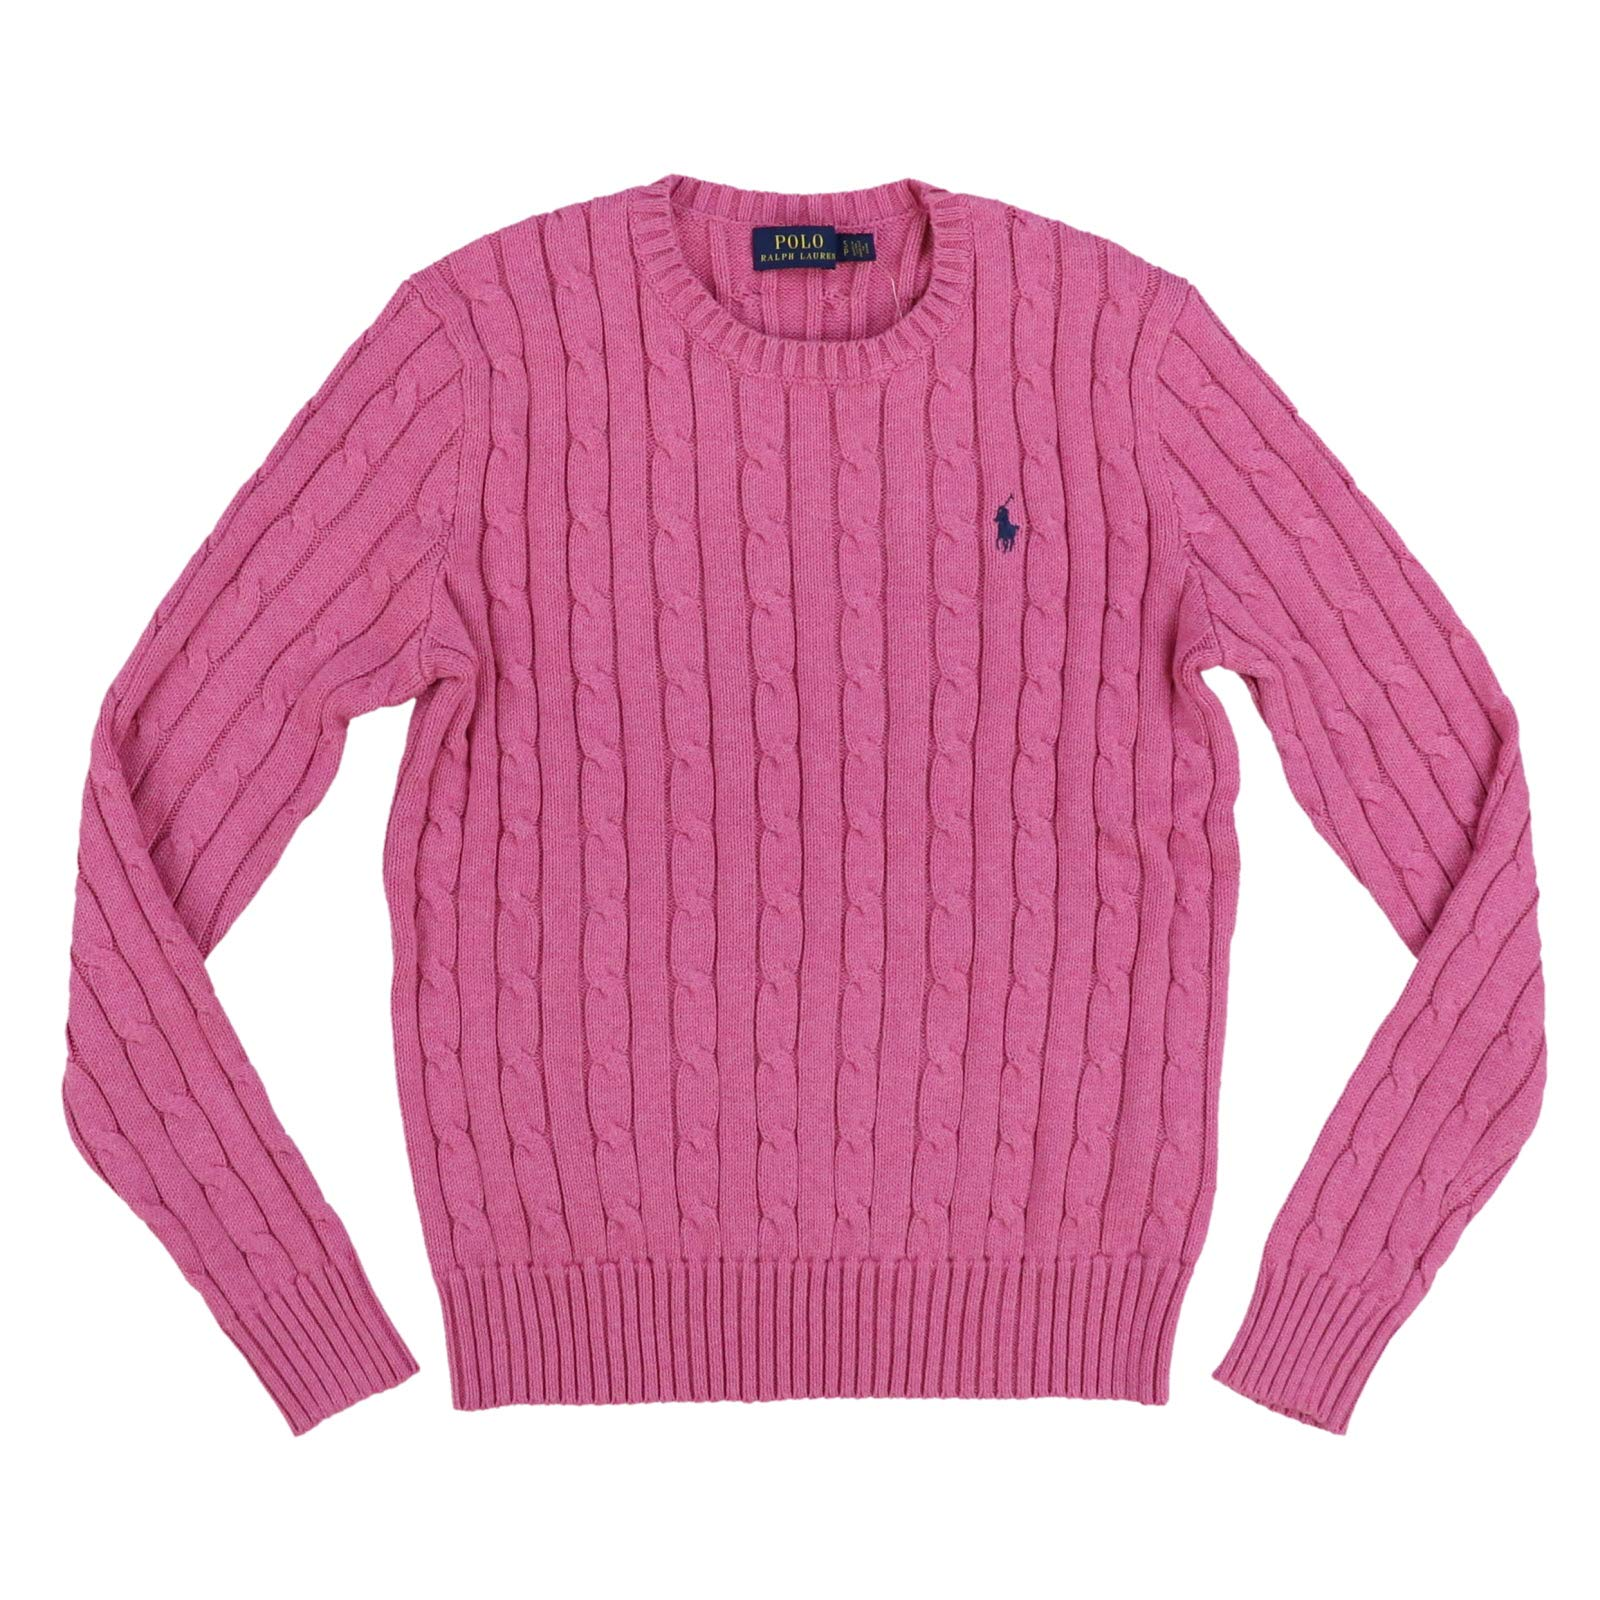 Polo Ralph Lauren Womens Cable Knit Crew Neck Sweater (Large, Blush Pink)